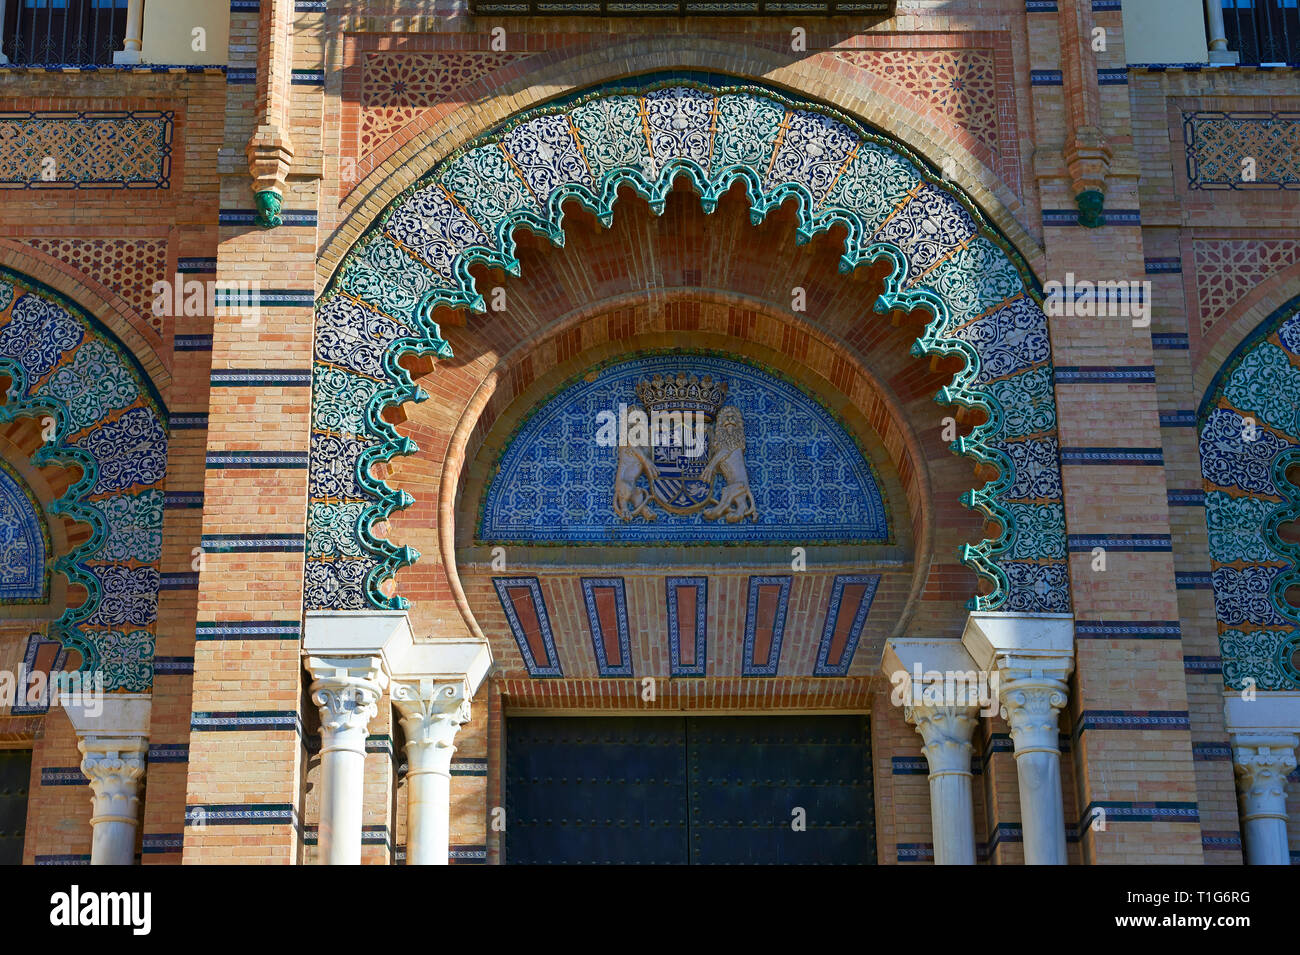 Die arabesque Architektur des Museums für Kunst und Traditionen in Amerika Platz, Sevilla, Spanien Stockbild